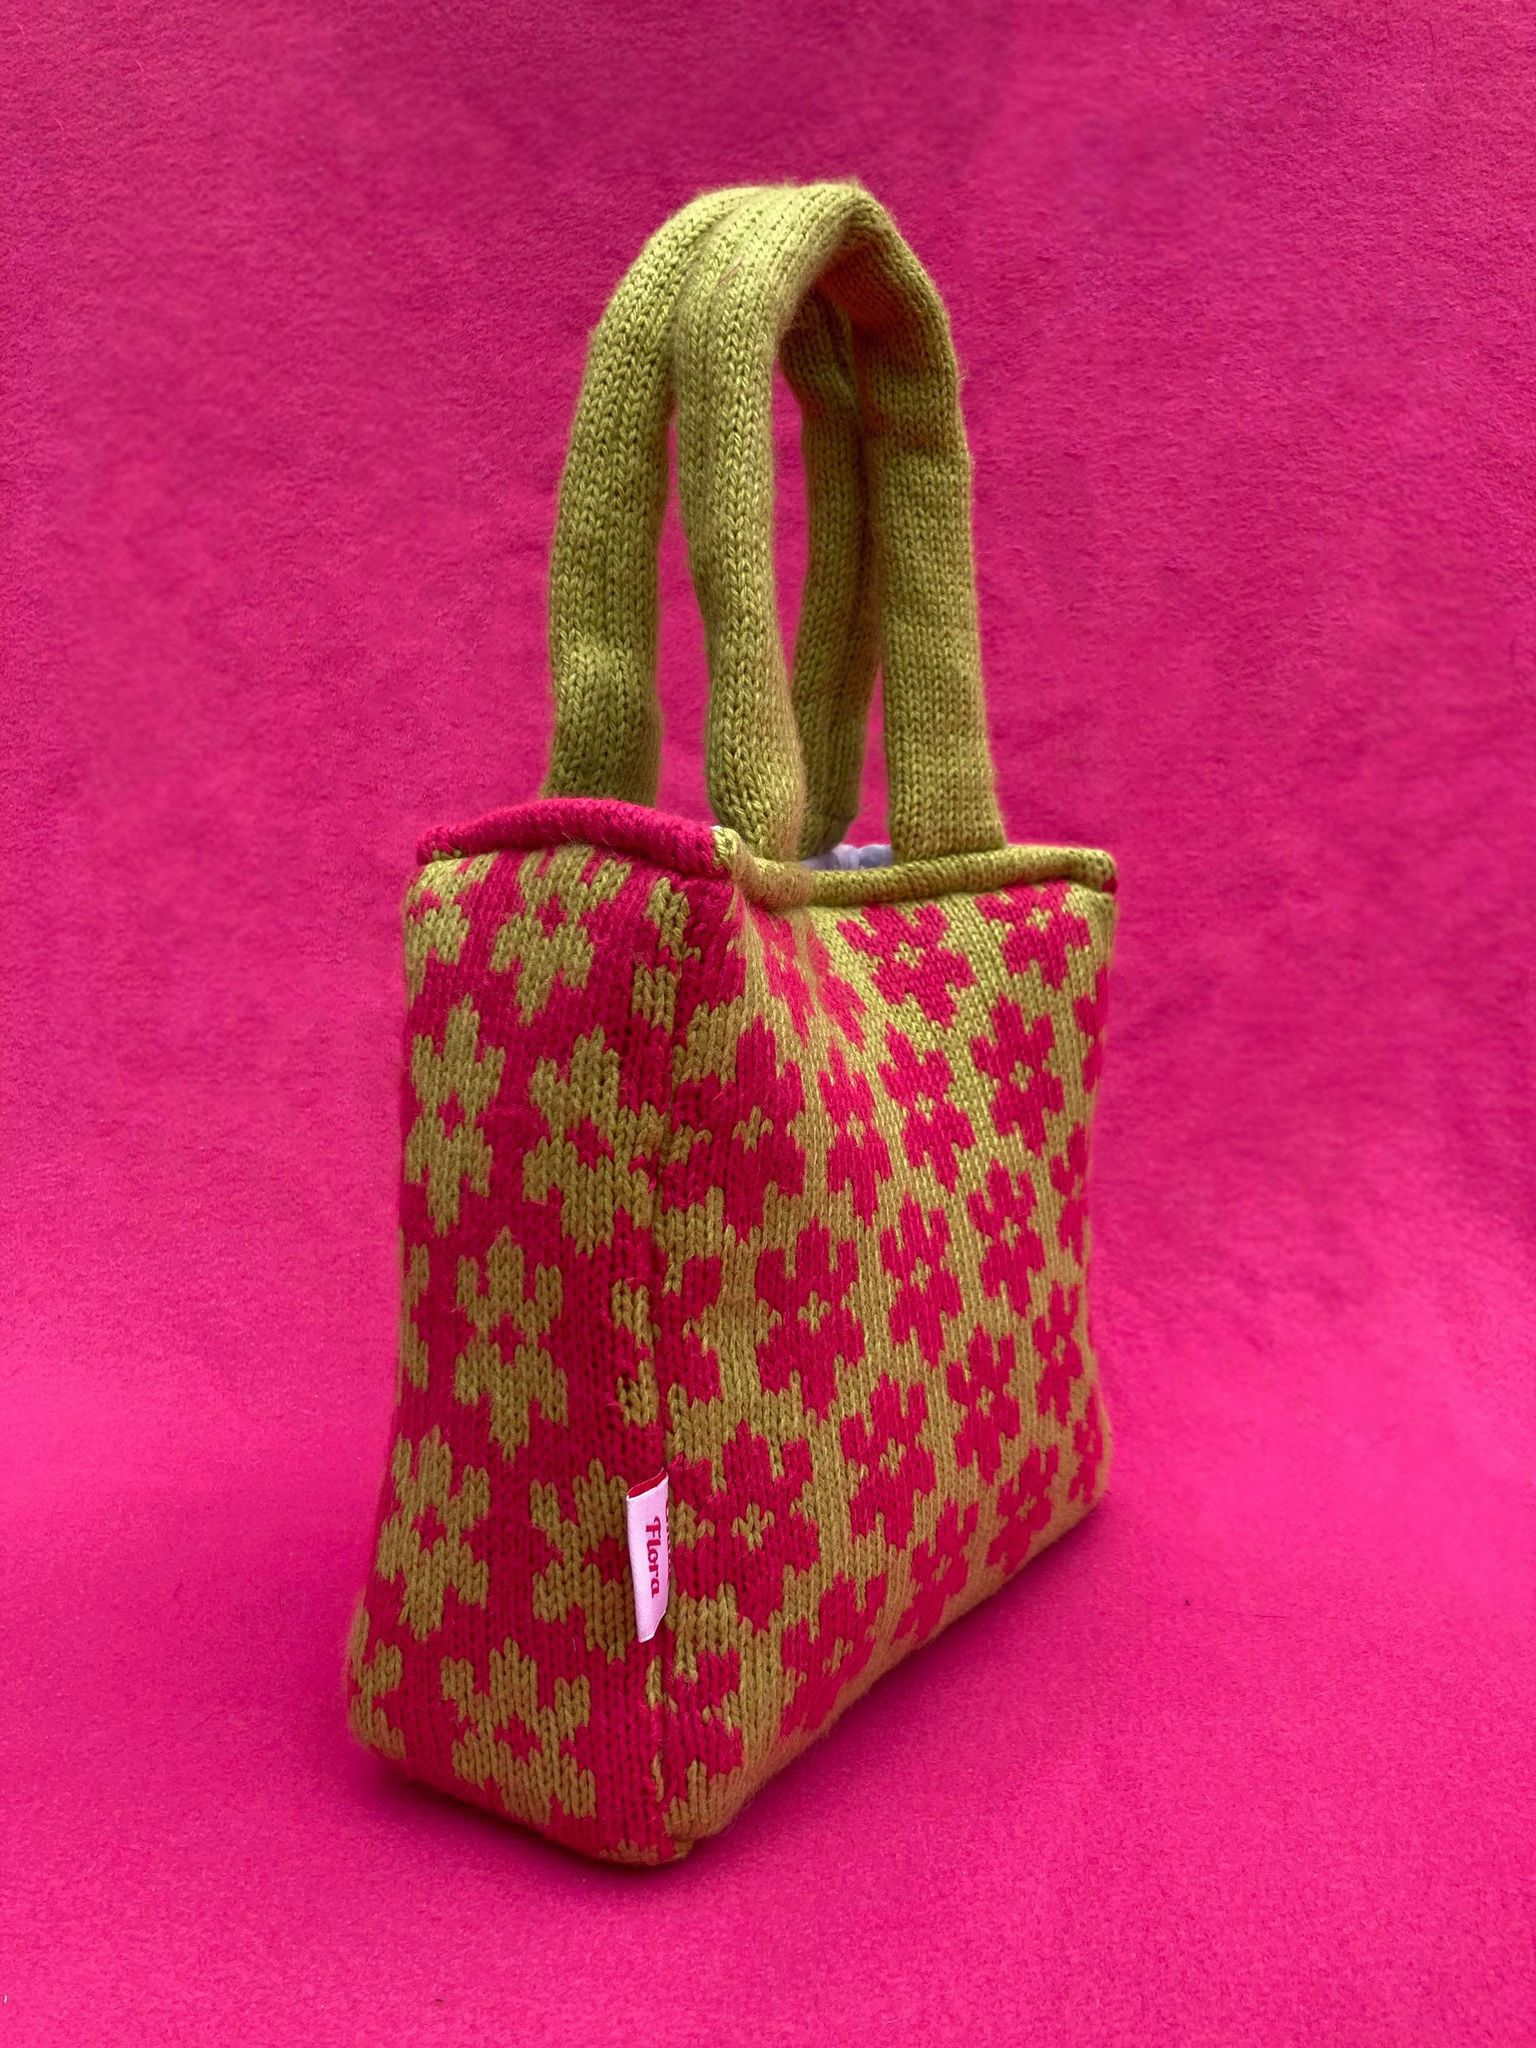 Mini Lilac Blossom Bag - Lime and Hot Pink